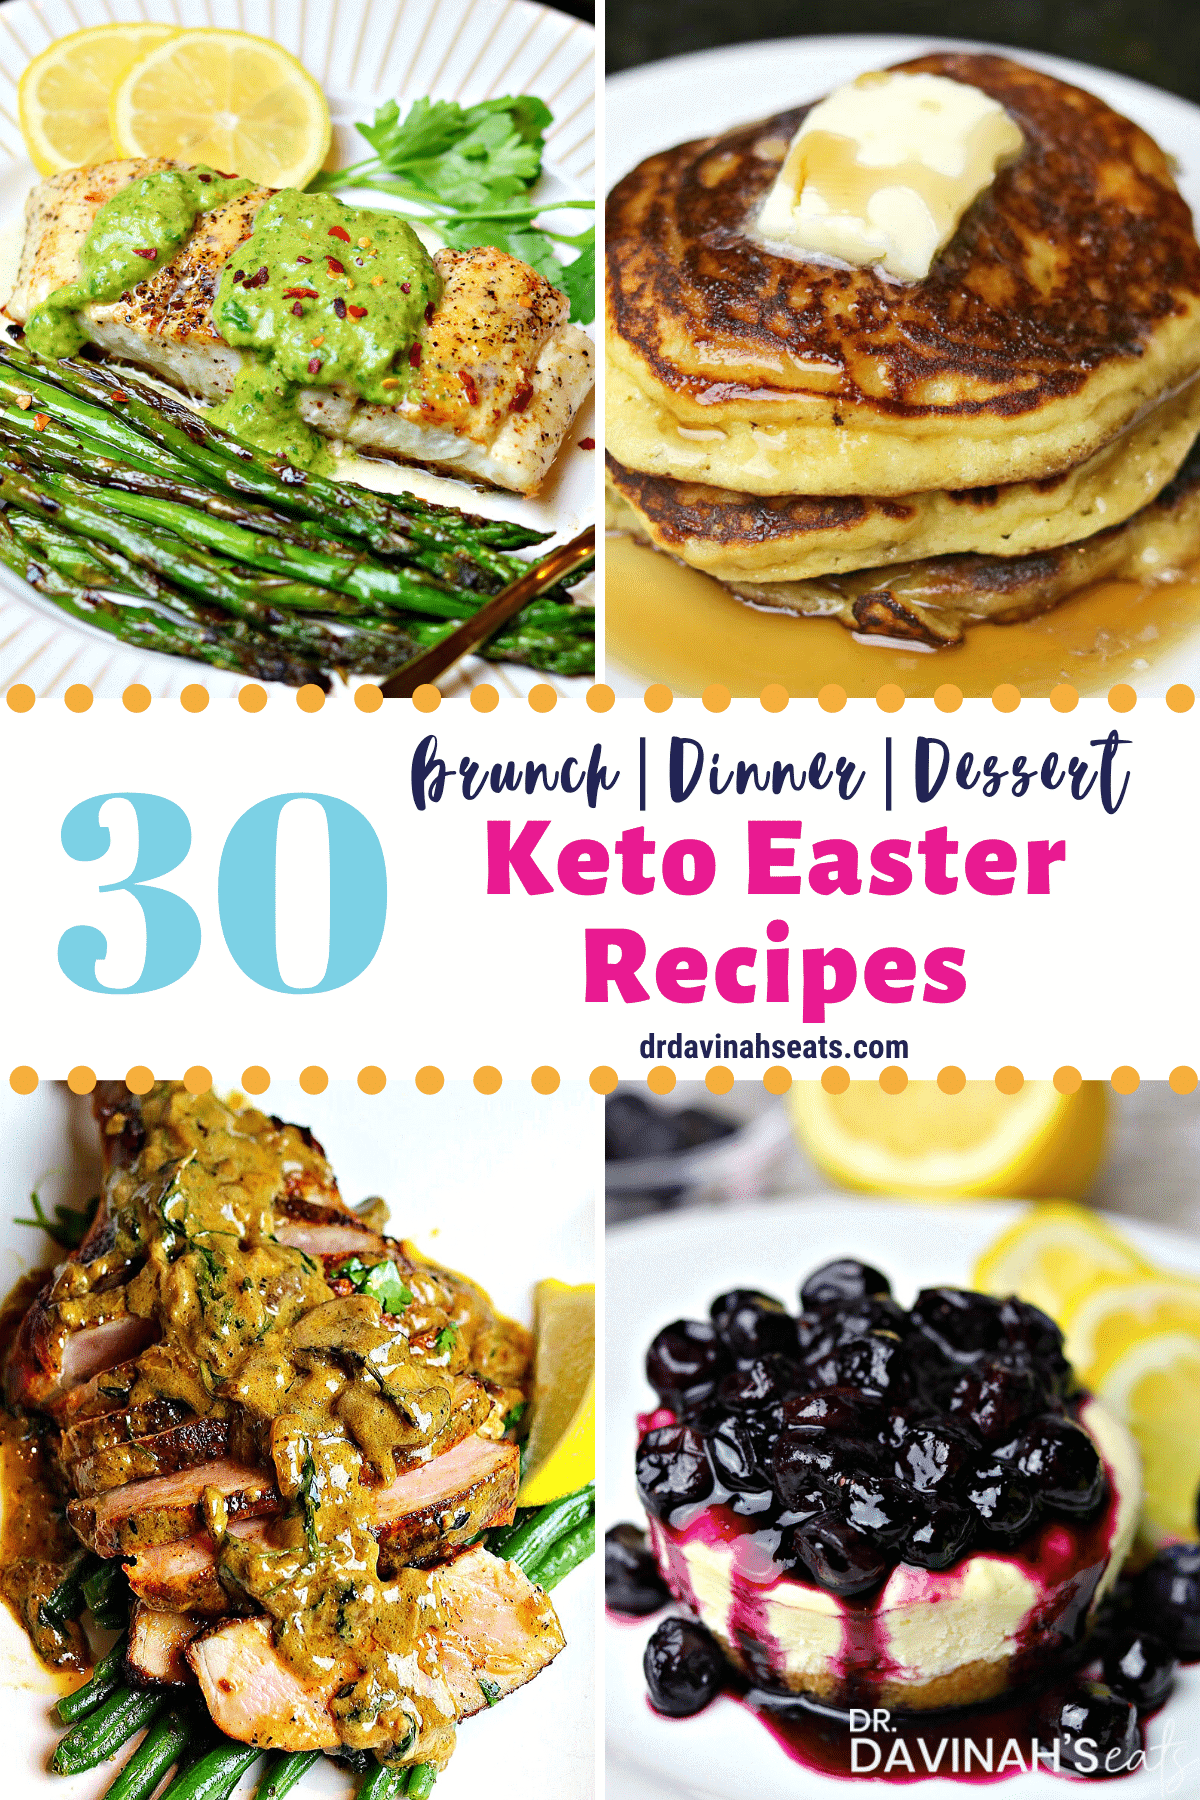 Pinterest image for Keto Easter dinner recipes